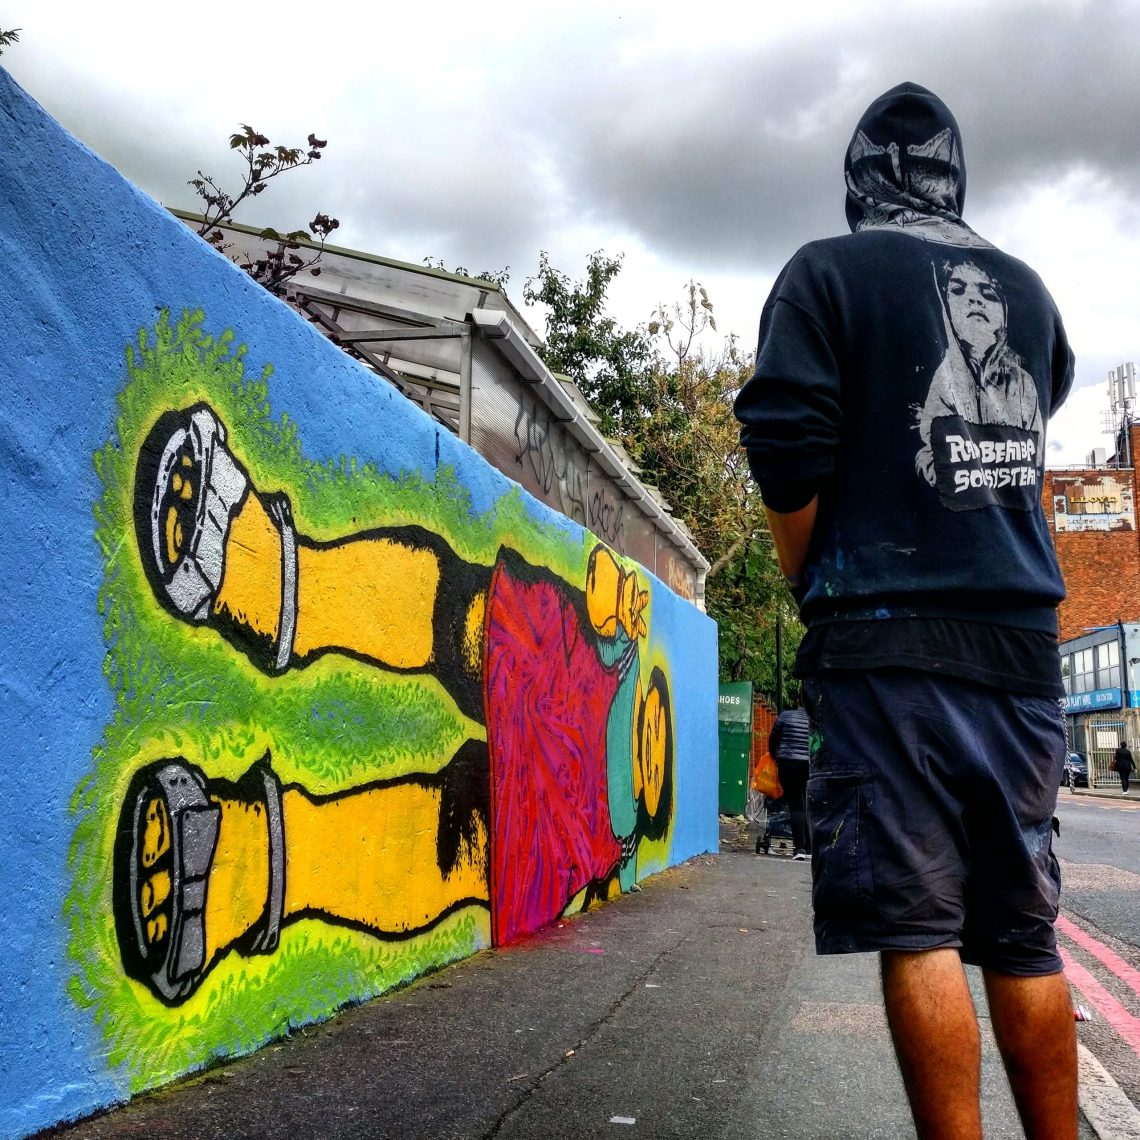 Stinkfish stands next to his street art work in Dalston, London